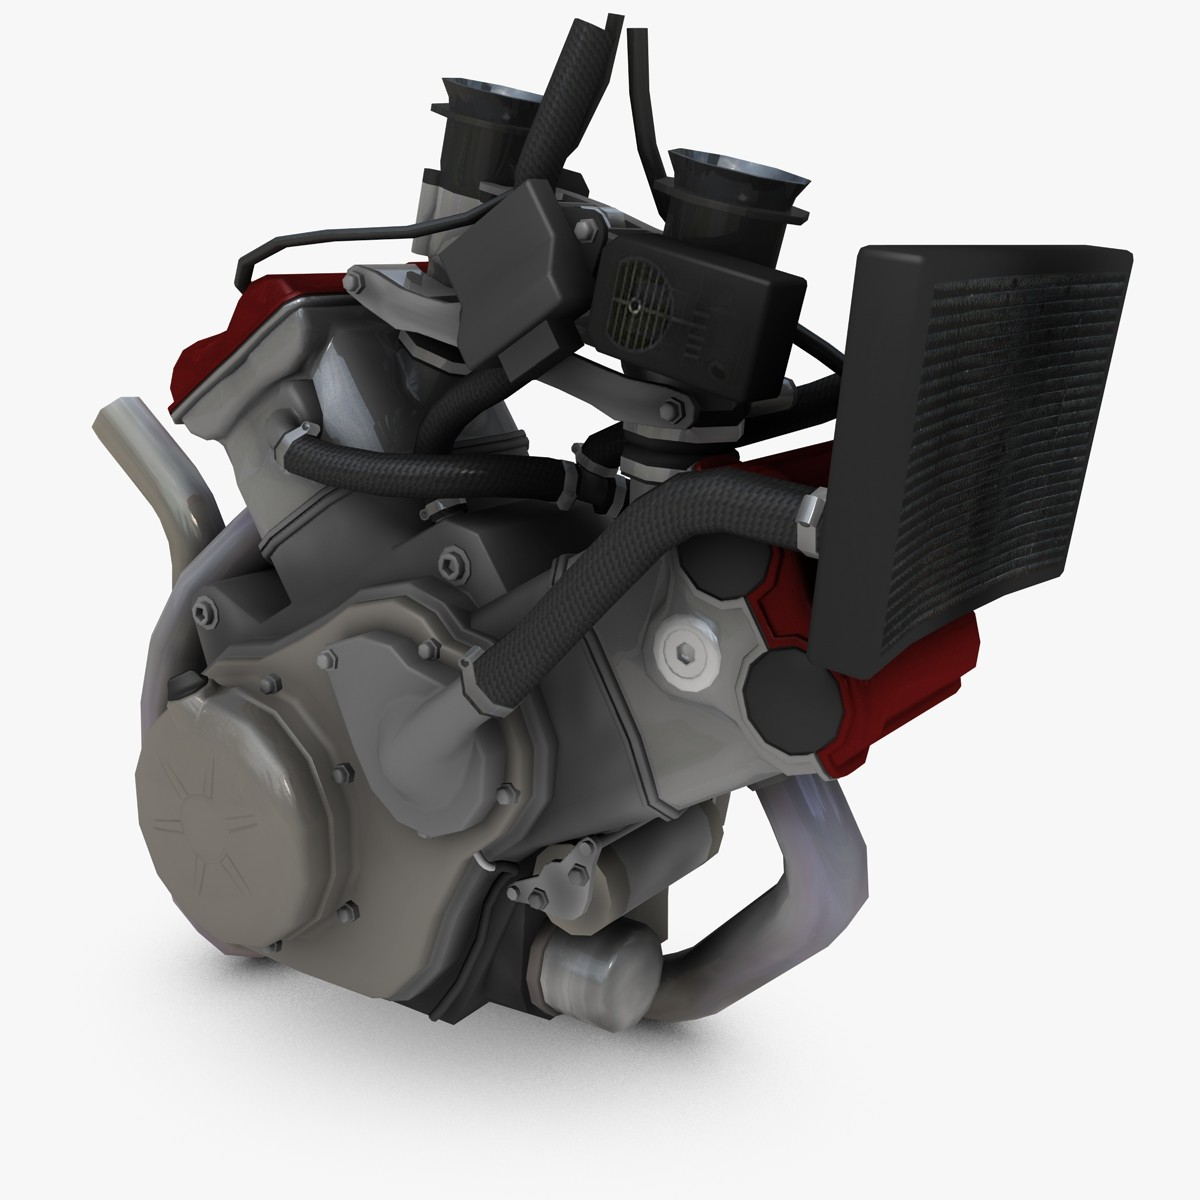 Motorcycle Engine 3D Models for Download | TurboSquid